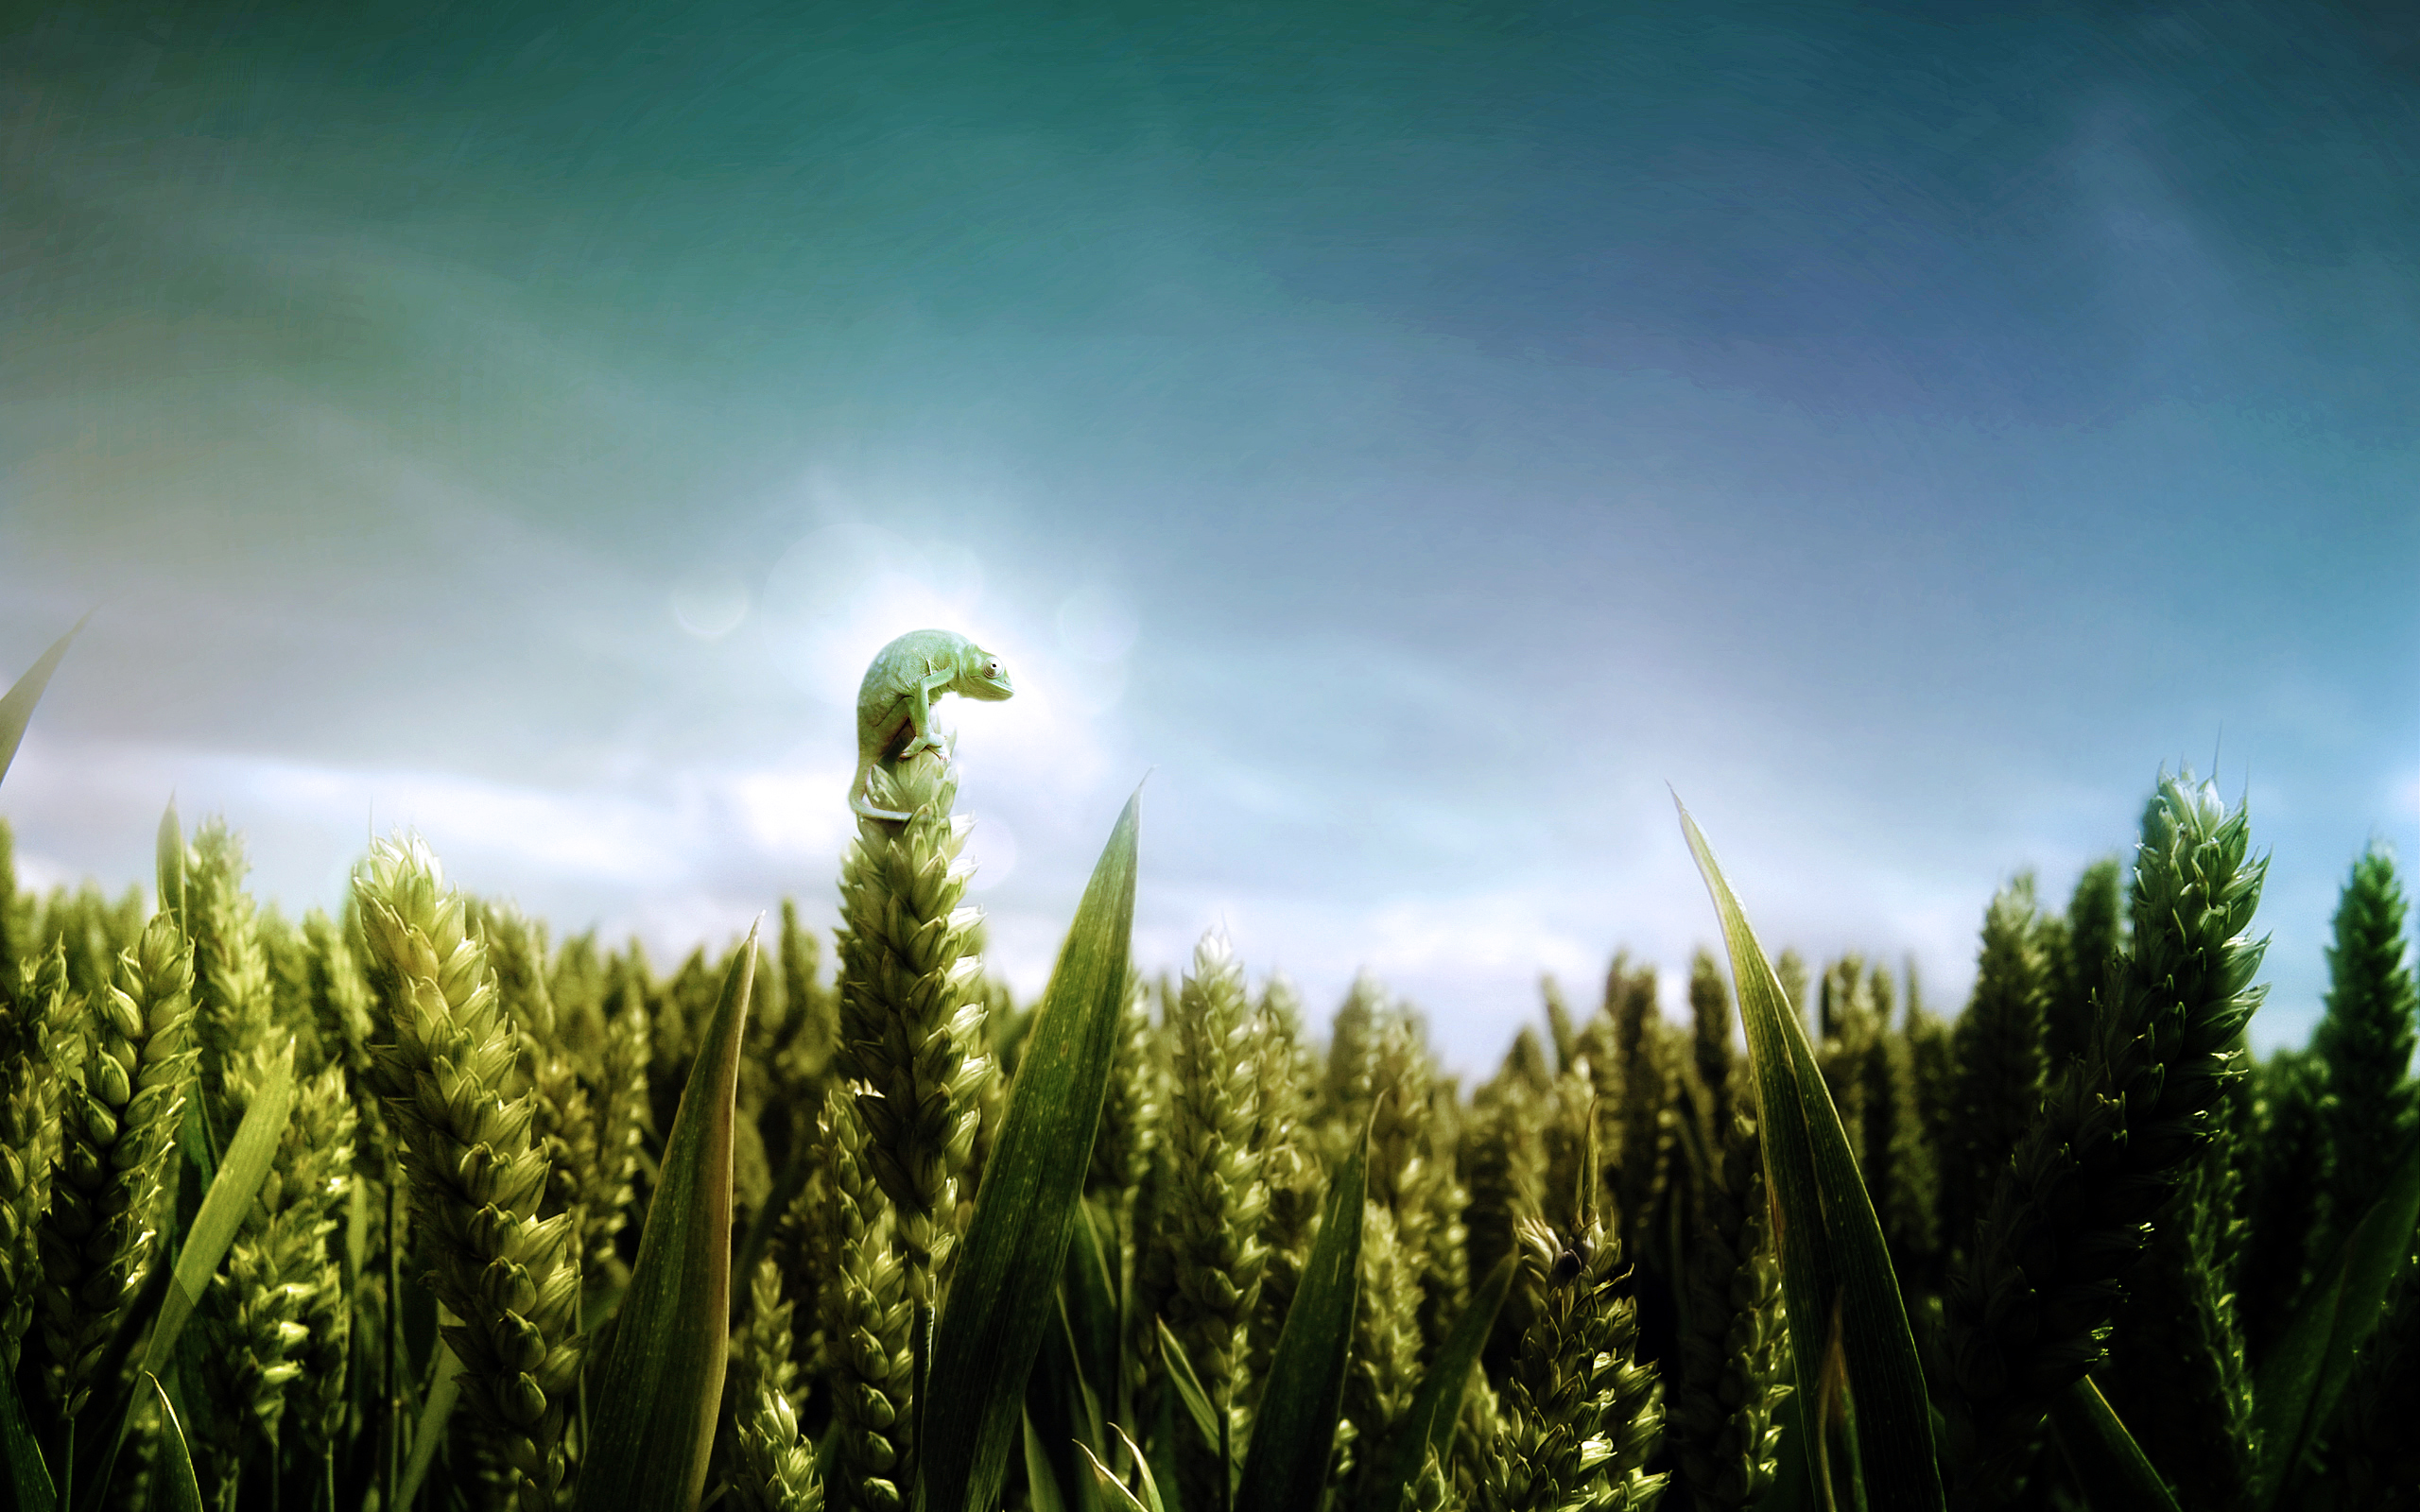 Chameleons-Fields-Skyscapes-wallpaper-wp424435-1